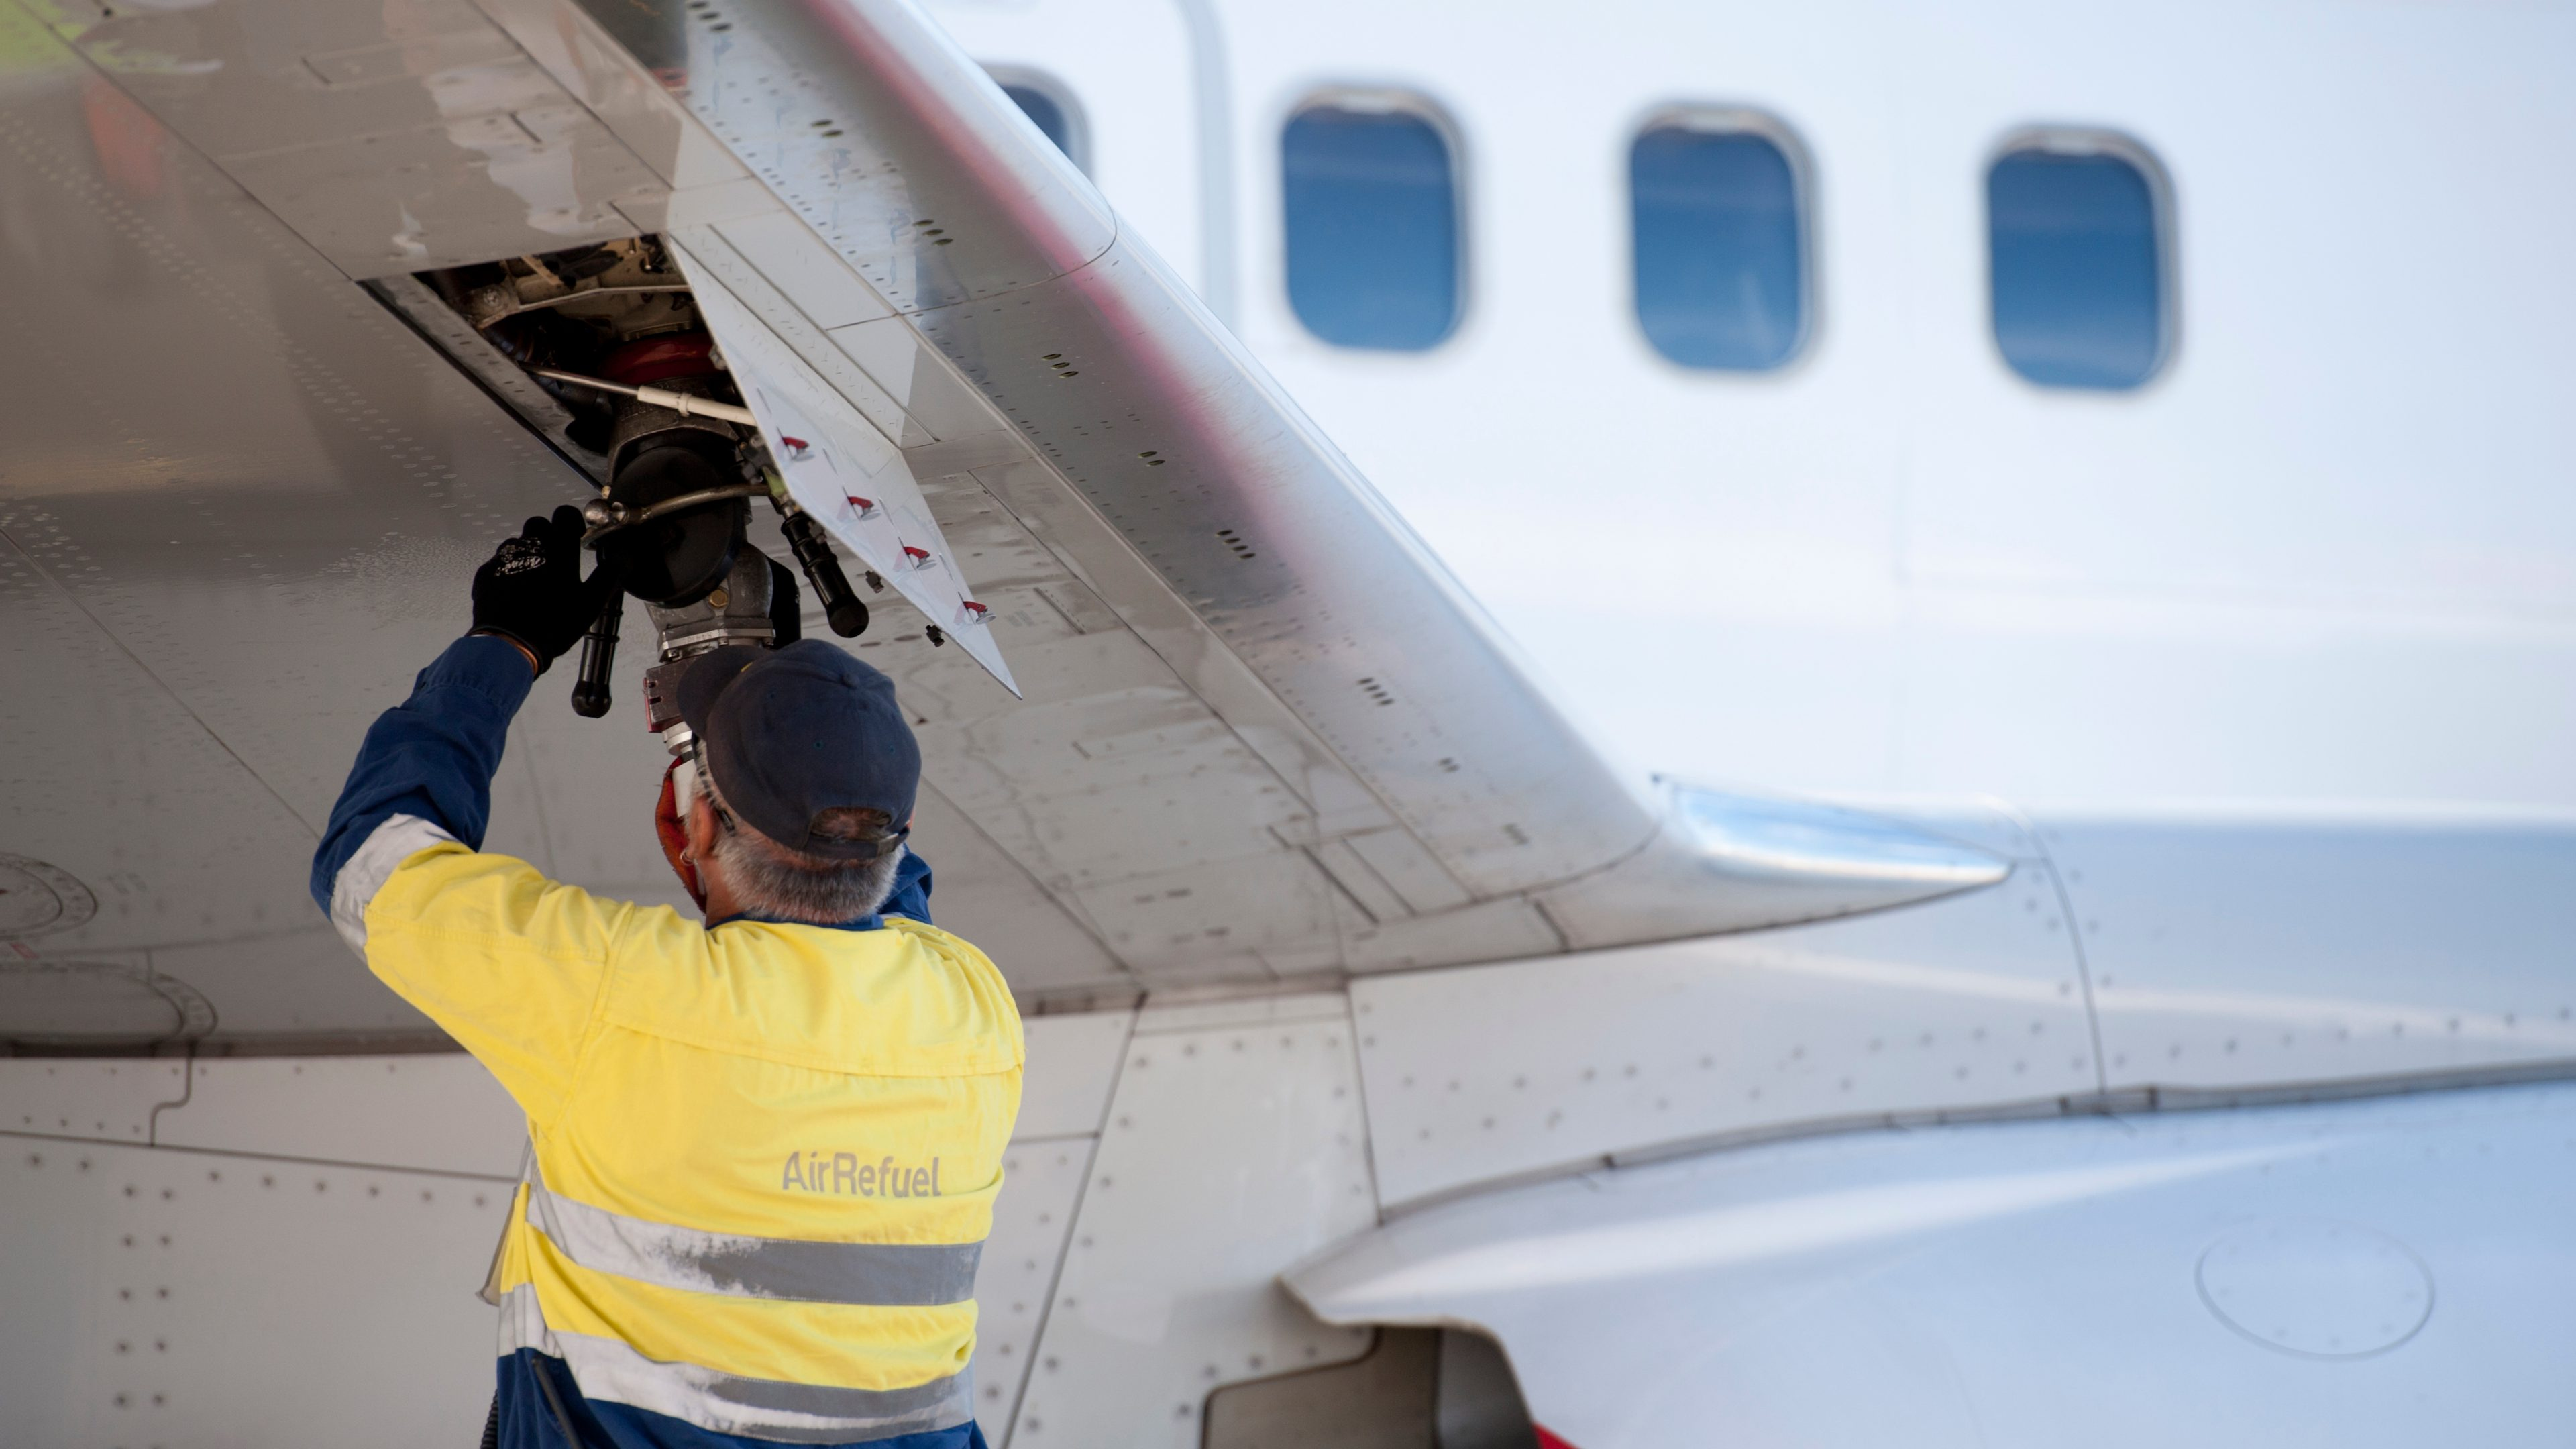 Kelvin Knights connecting the aviation fuel hose to commence under wing refuel of an aircraft at Brisbane Airport, Australia.